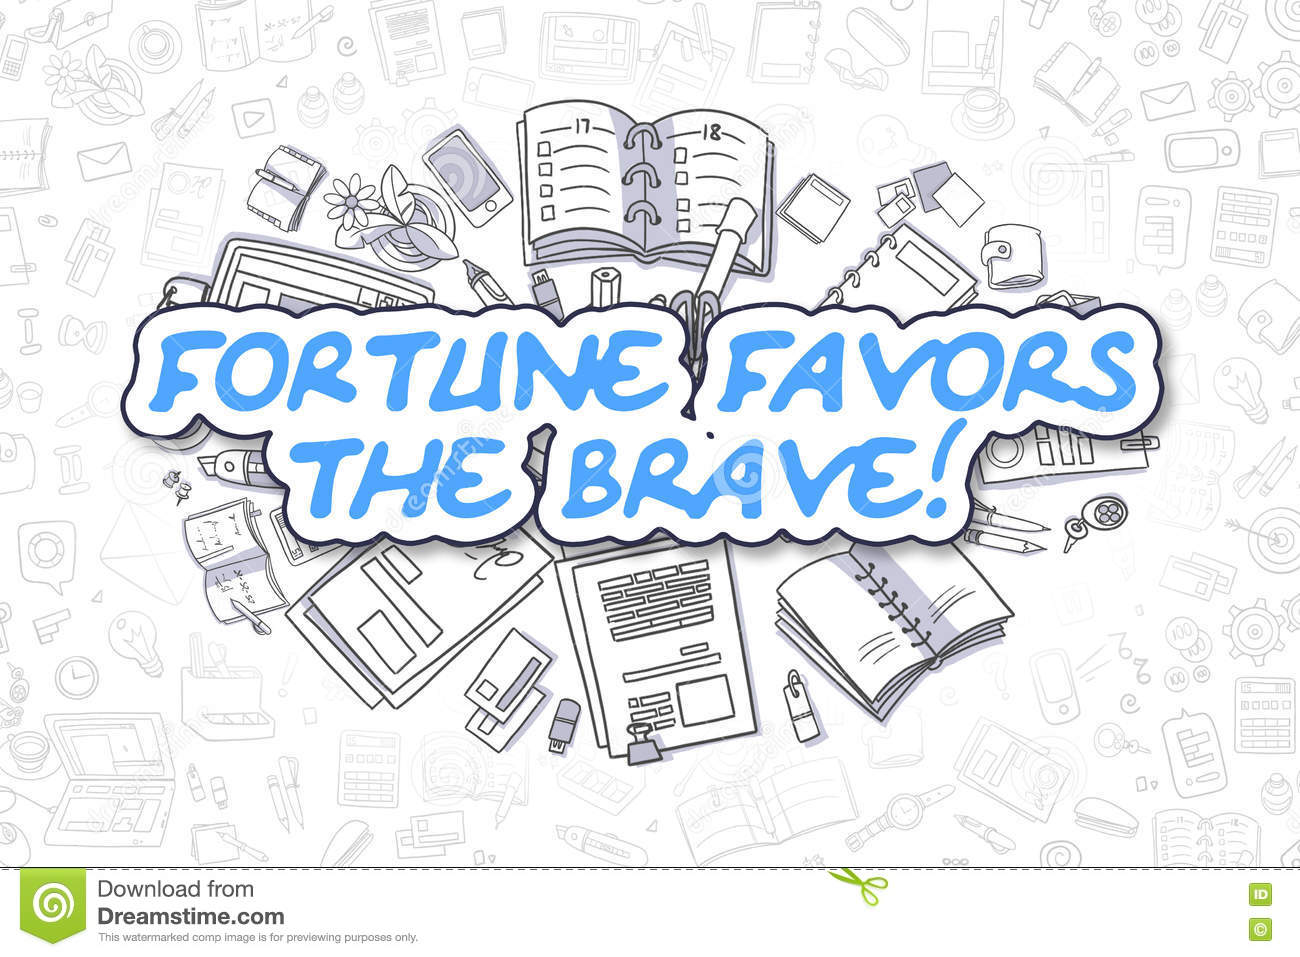 532 Words Short Essay on fortune Favors the Brave (free to read)